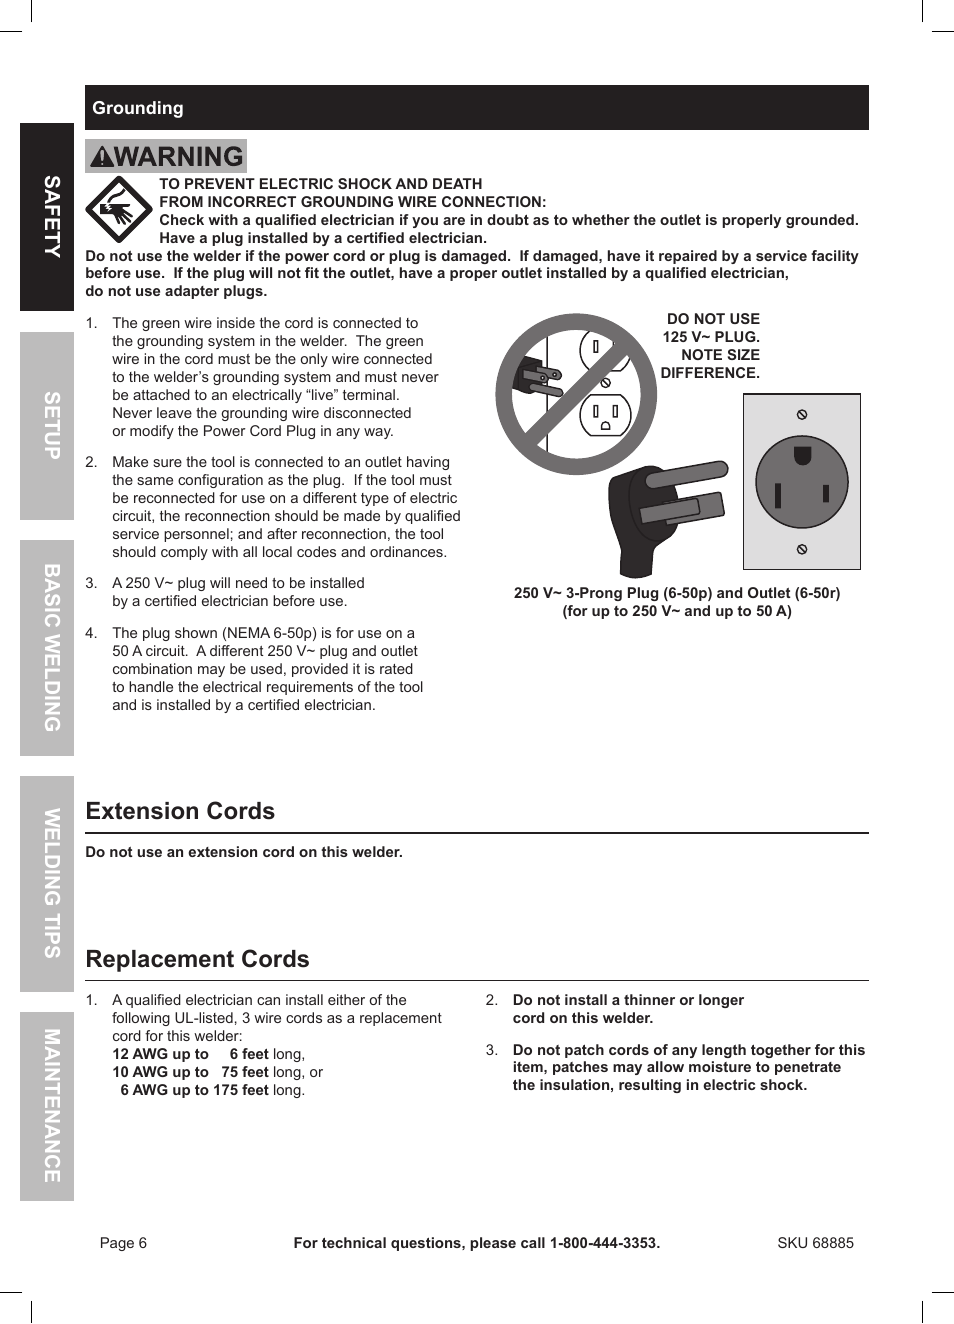 Extension cords, Replacement cords | Chicago Electric Wire Feed ...